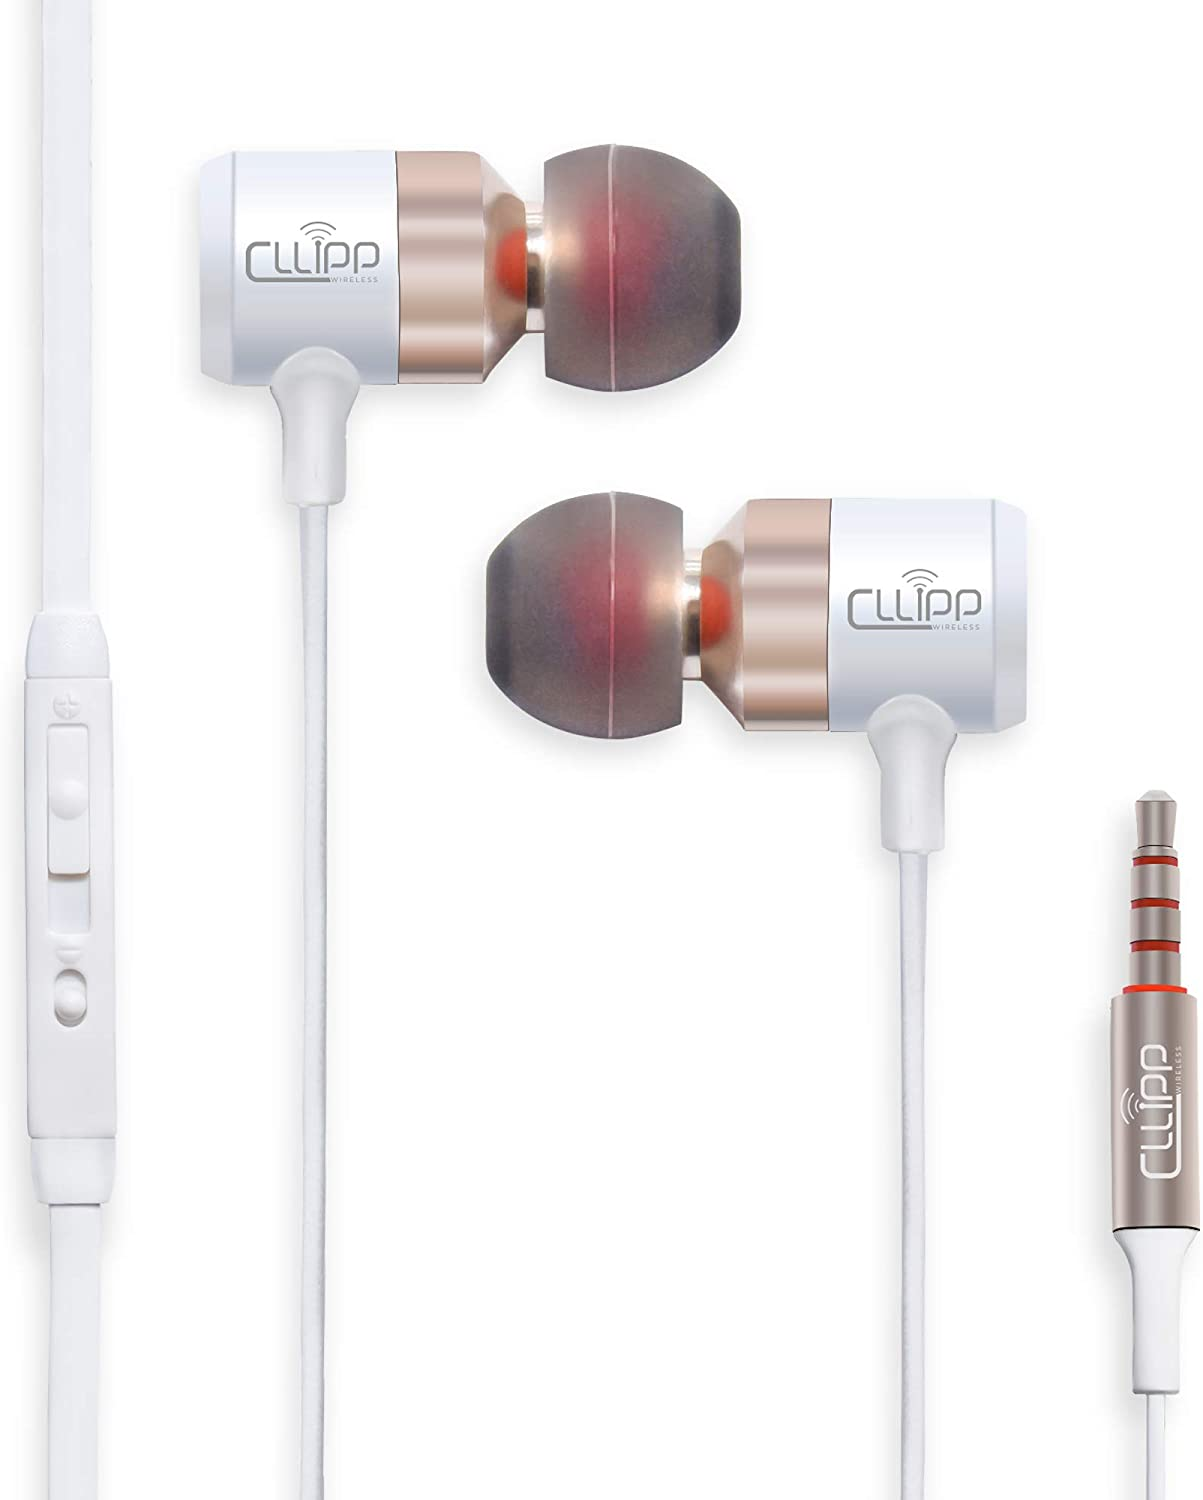 CLLIPP Noise Cancelling Earphones Earbuds with Microphone & Volume Control Tangle Free Design Dynamic Sound for Android, Apple Smartphones, Samsung, Sony, LG/Tablets/PC/Laptops/iPhones/iPod